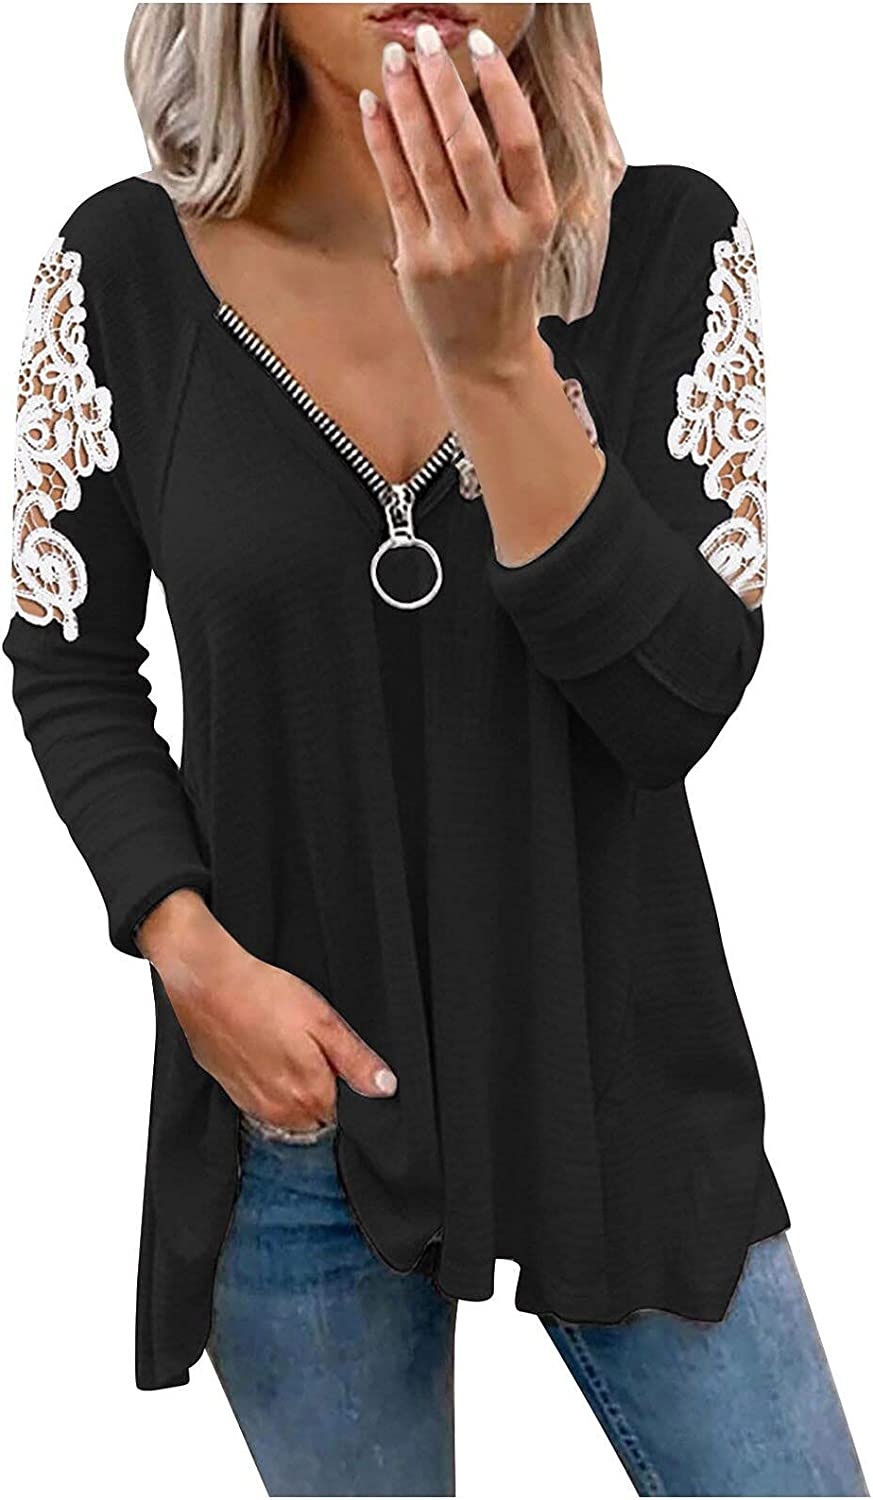 Hemlock Women Lace Long Sleeve Tops Elegant V Neck Shirt Solid Color Pullover Sweater Top Outwear